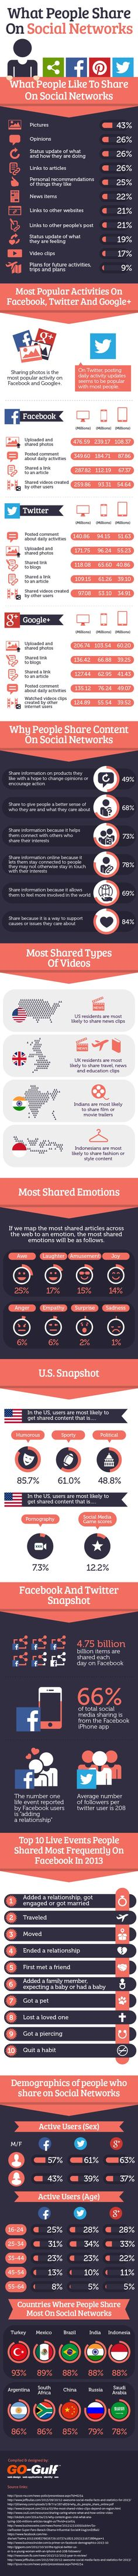 What People Share On Social Networks - #SocialMedia #Infographic #SocialNetworks